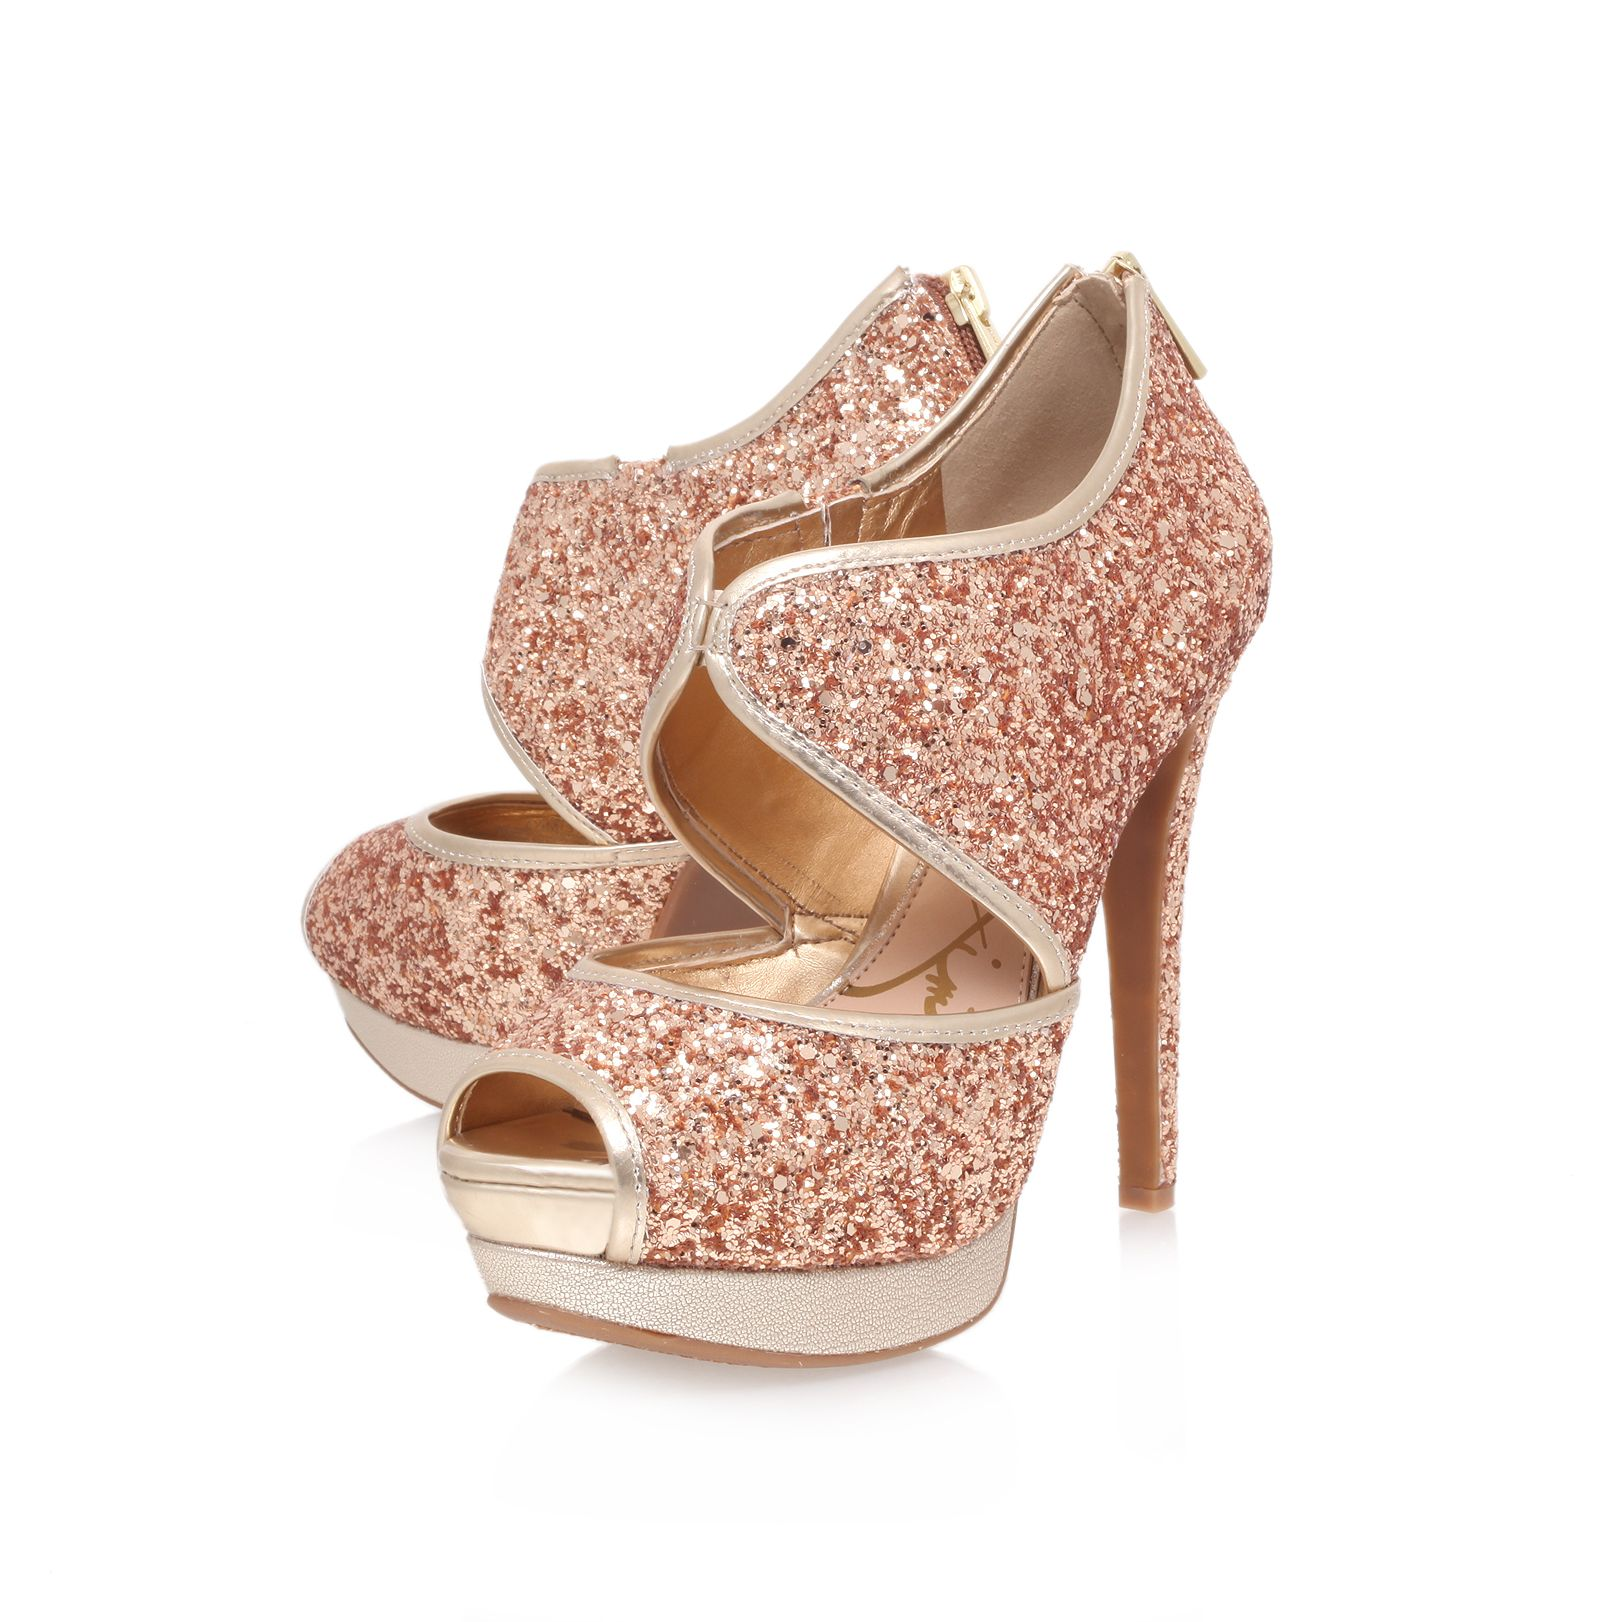 Smashh high heel platform shoes